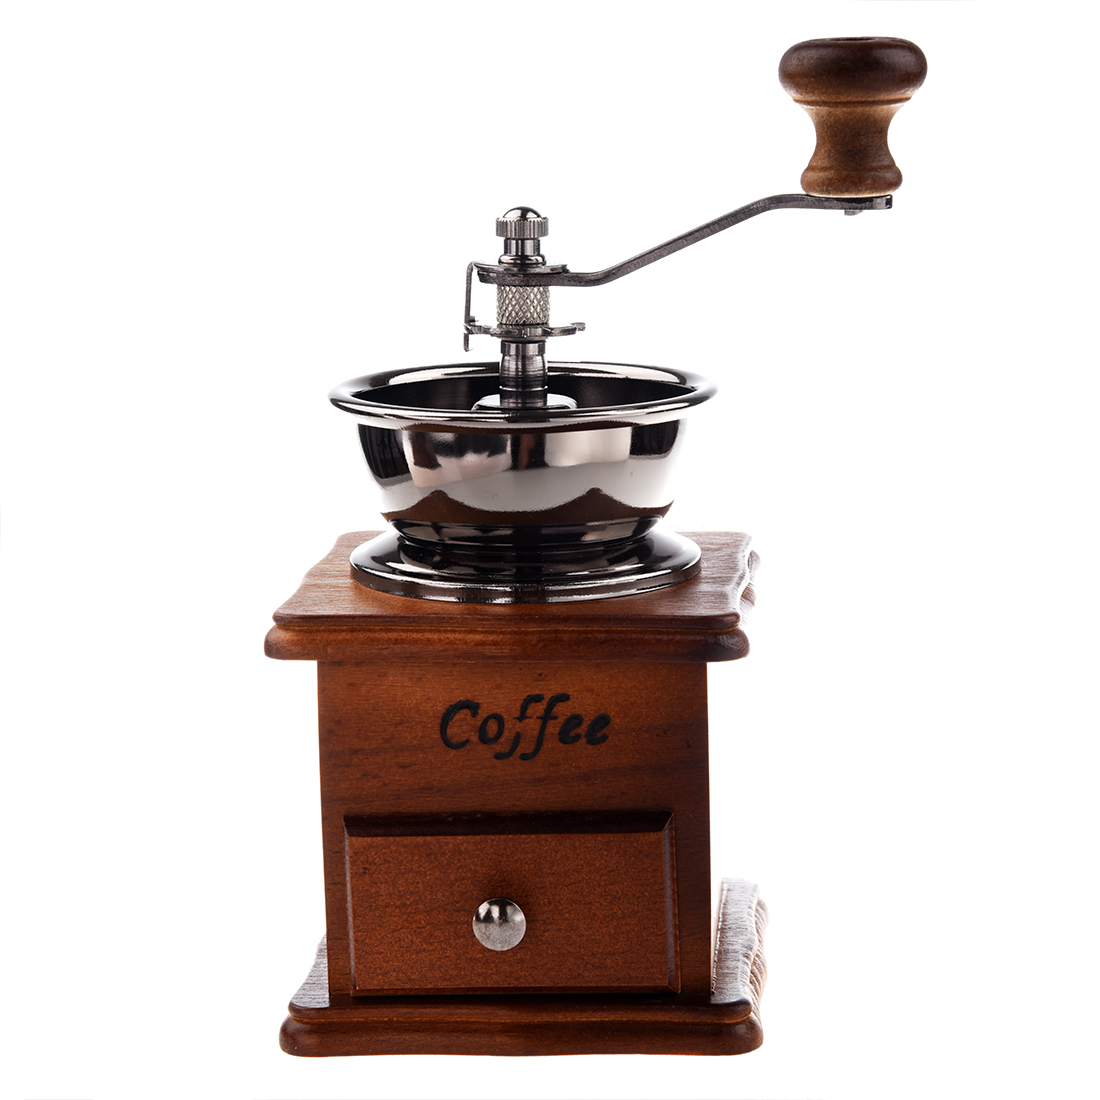 Manual Coffee Grinder Coffee Bean Mill Retro Style Wood Wooden Nut Pepper Seeds Spice Mini Grinder For Home High Quality manual coffee bean grinder retro wooden design mill maker grinders retro coffee spice mini burr mill with high quality ceramic m